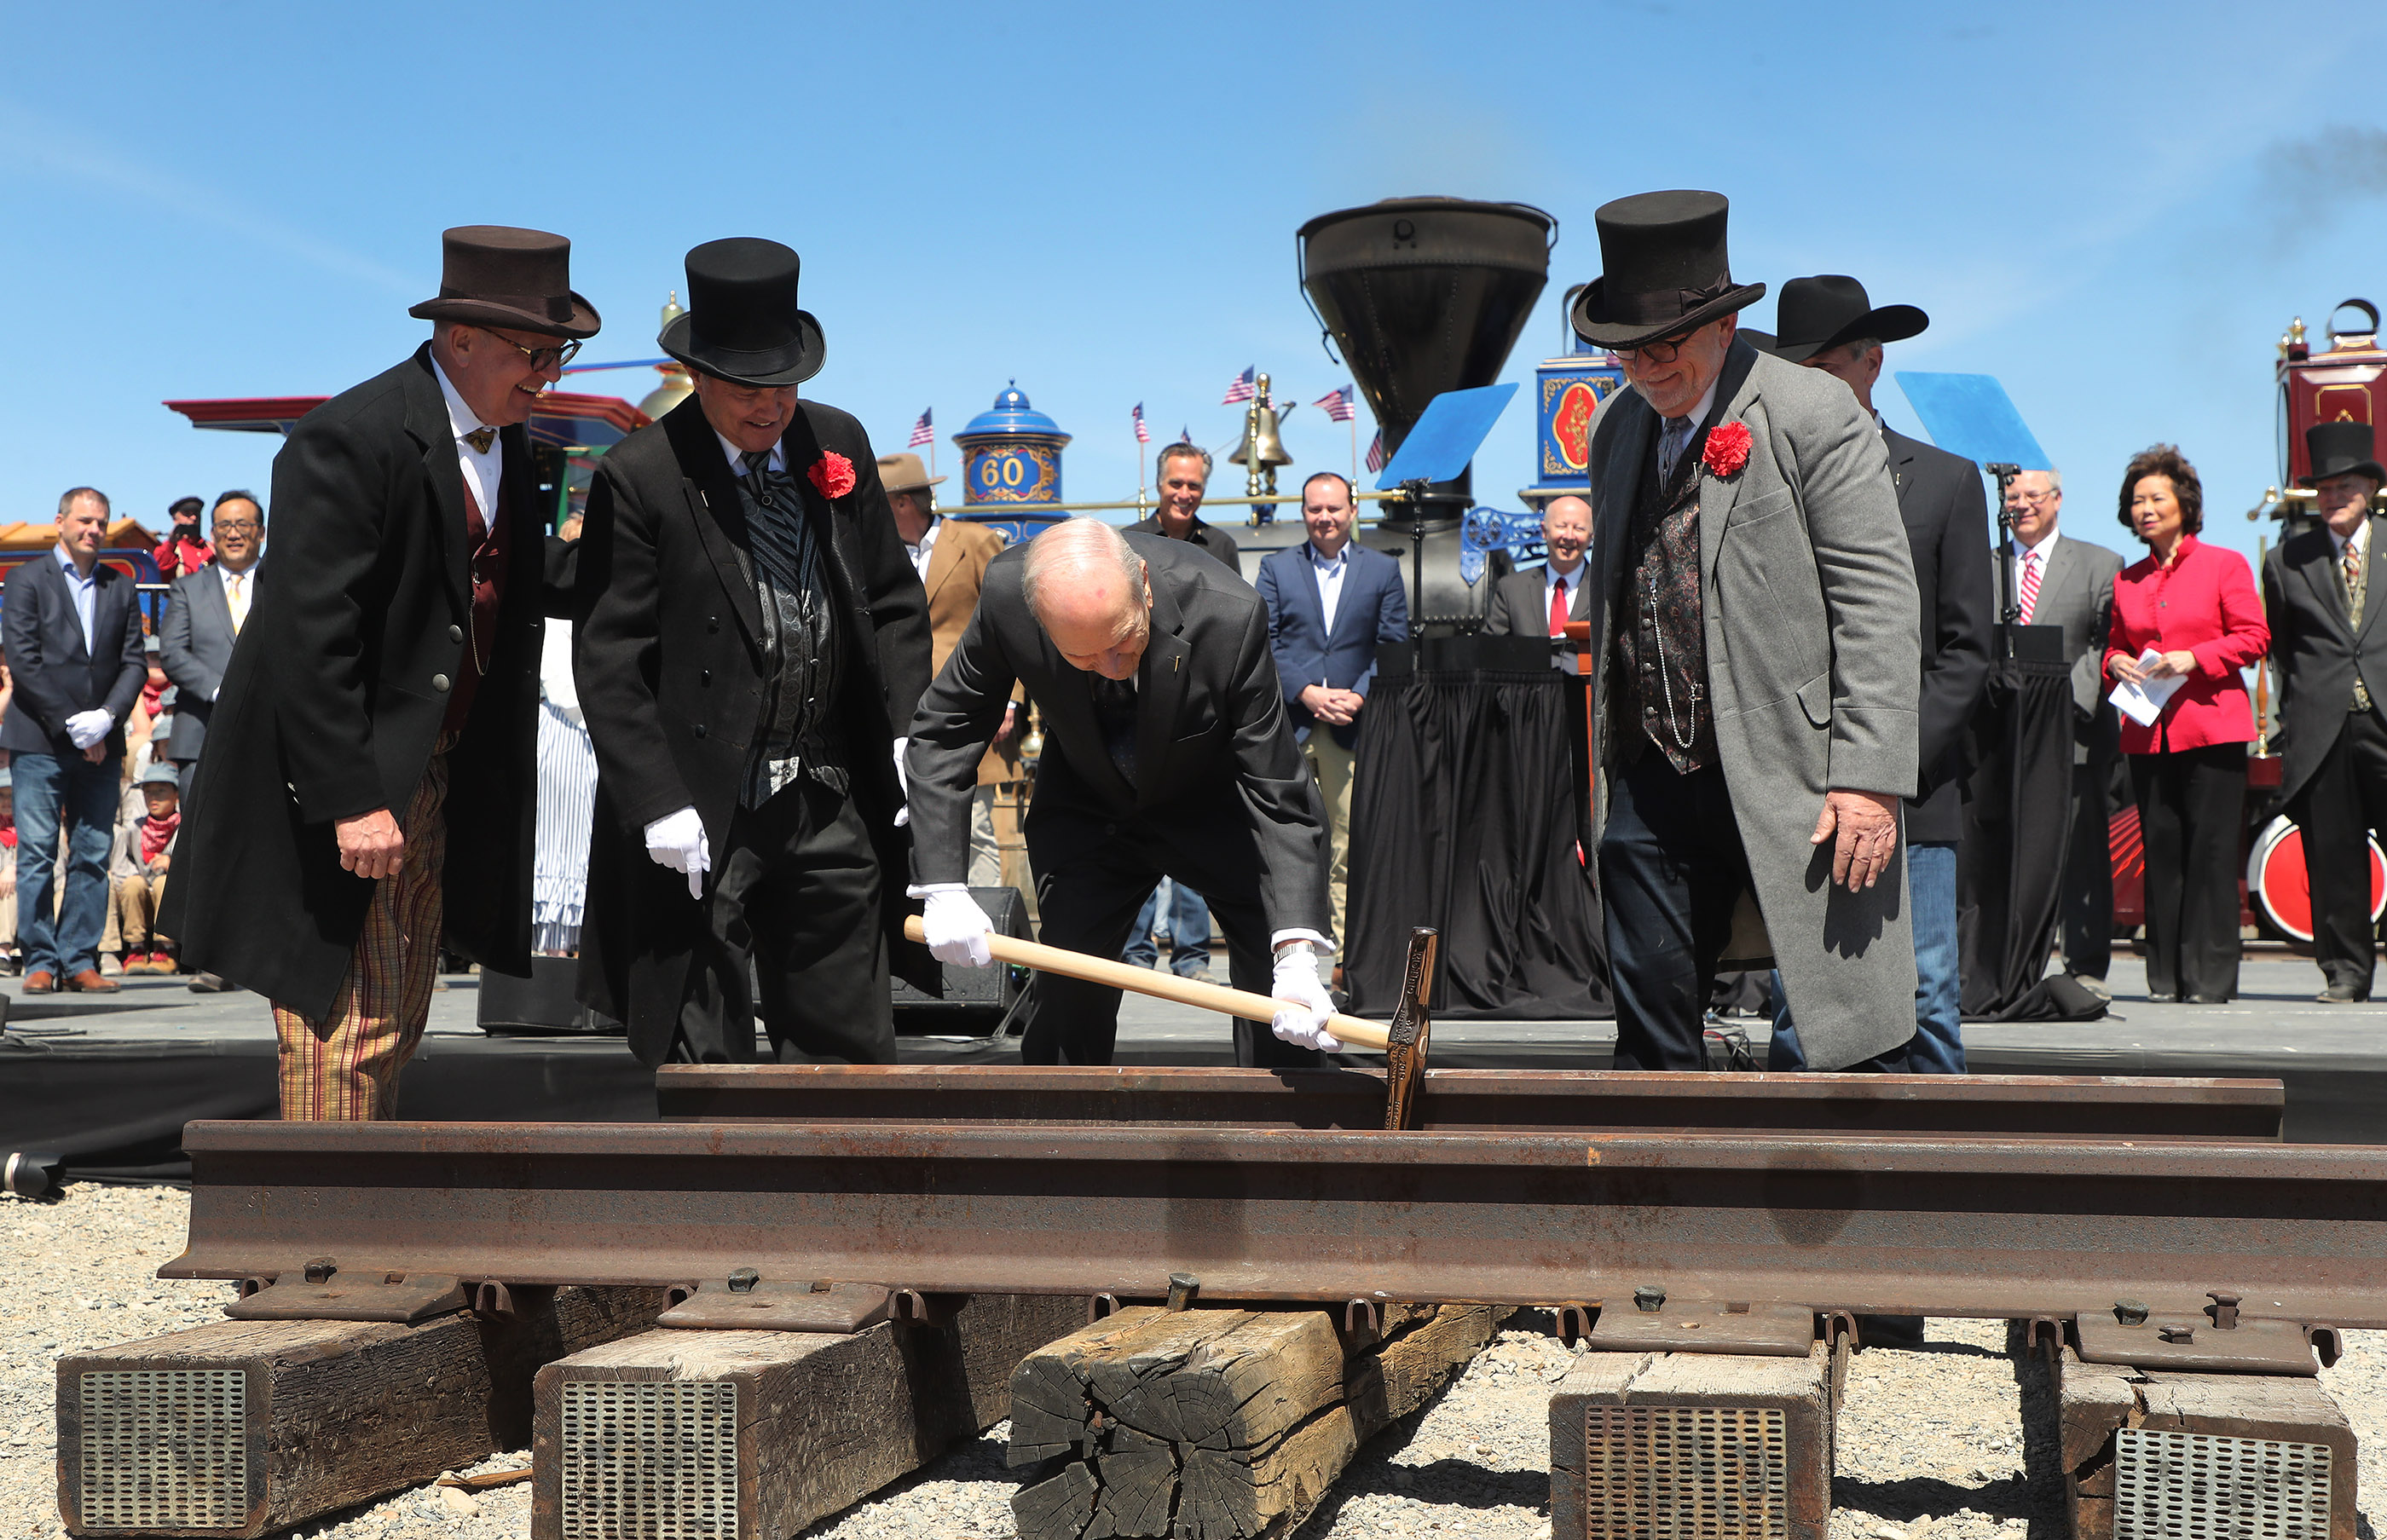 President Russell M. Nelson of The Church of Jesus Christ of Latter-day Saints, center, drives a golden spike during the 150th anniversary celebration of the transcontinental railroad at the Golden Spike National Historical Park at Promontory Summit, Utah, on Friday, May 10, 2019.